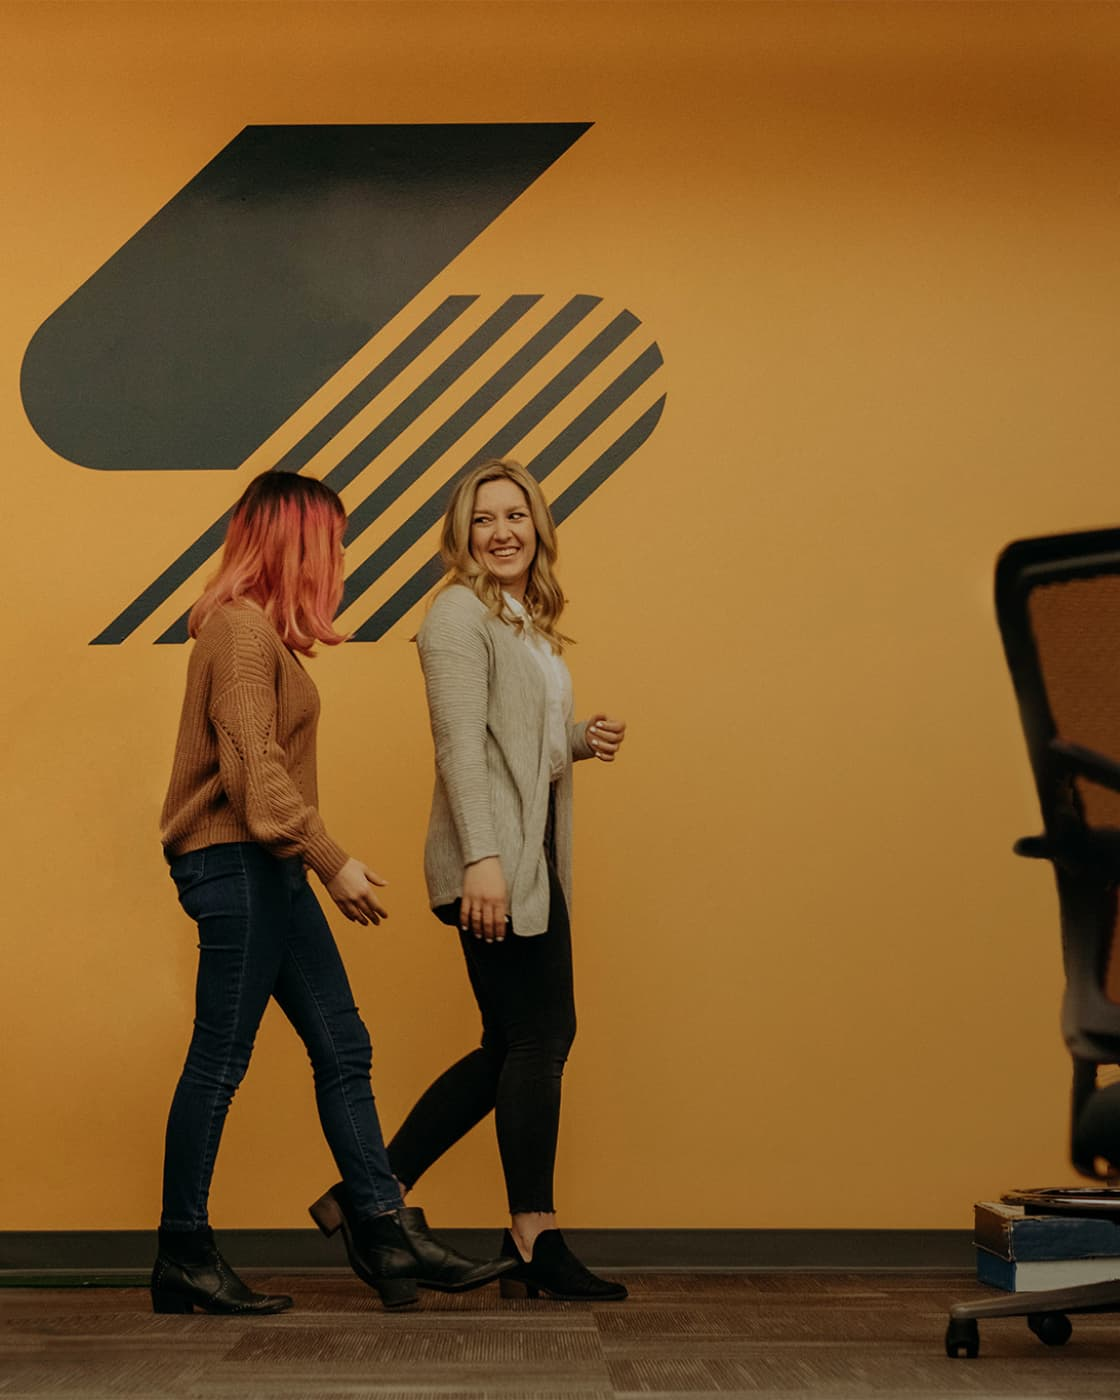 Two Steam Logistics employees walk through the bull pen, with the Steam logo displayed on the wall behind them.